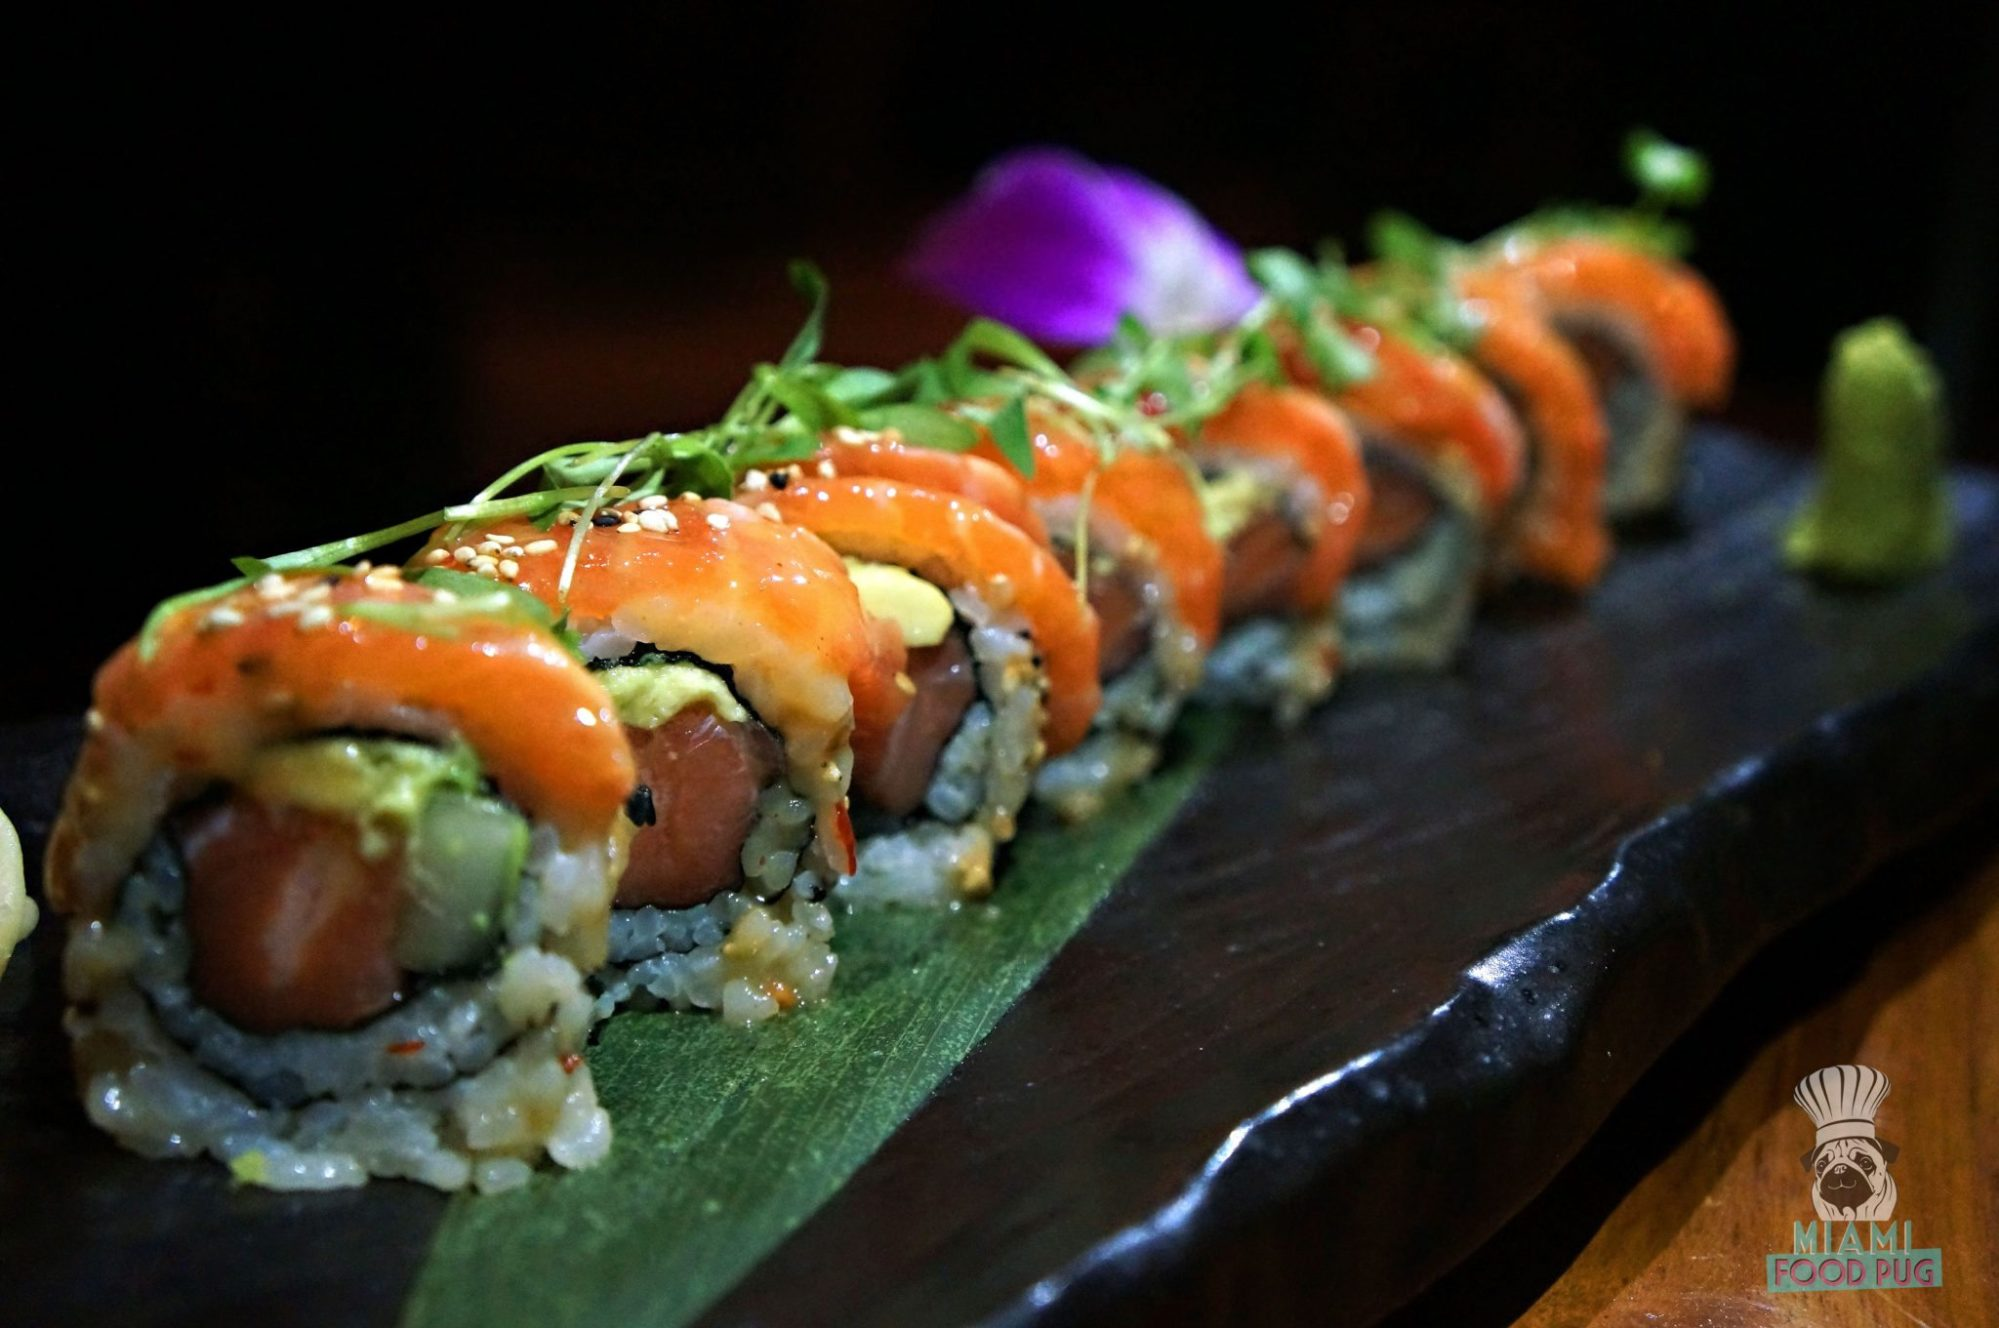 Naiyara's Naiyara Roll - salmon belly, cucumber, avocado, scallion, truffle oil, topped with salmon belly 'crème brulee'